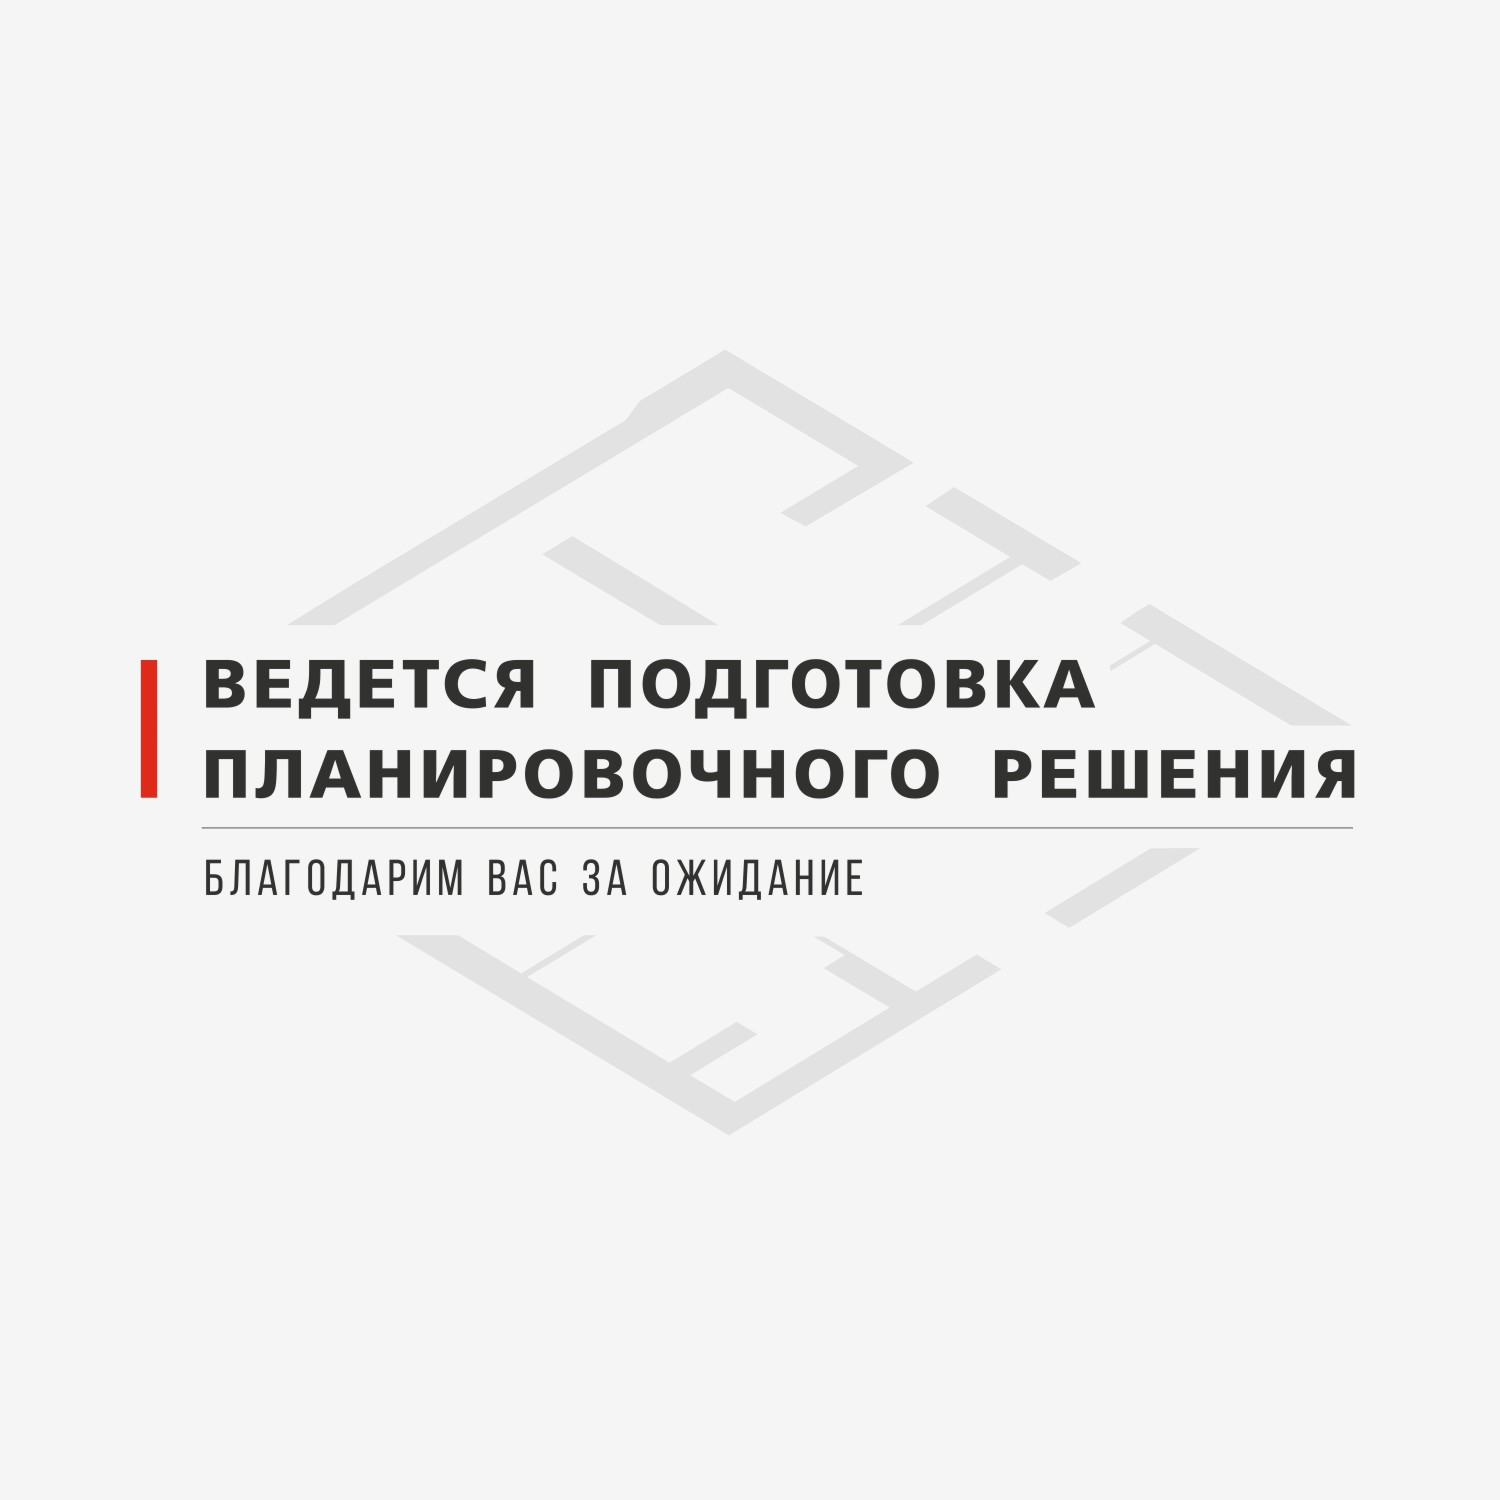 Купить однокомнатную квартиру в новостройке г Москва, ул Лобачевского, д 120 - World Real Estate Service «PUSH-KA», объявление №189345